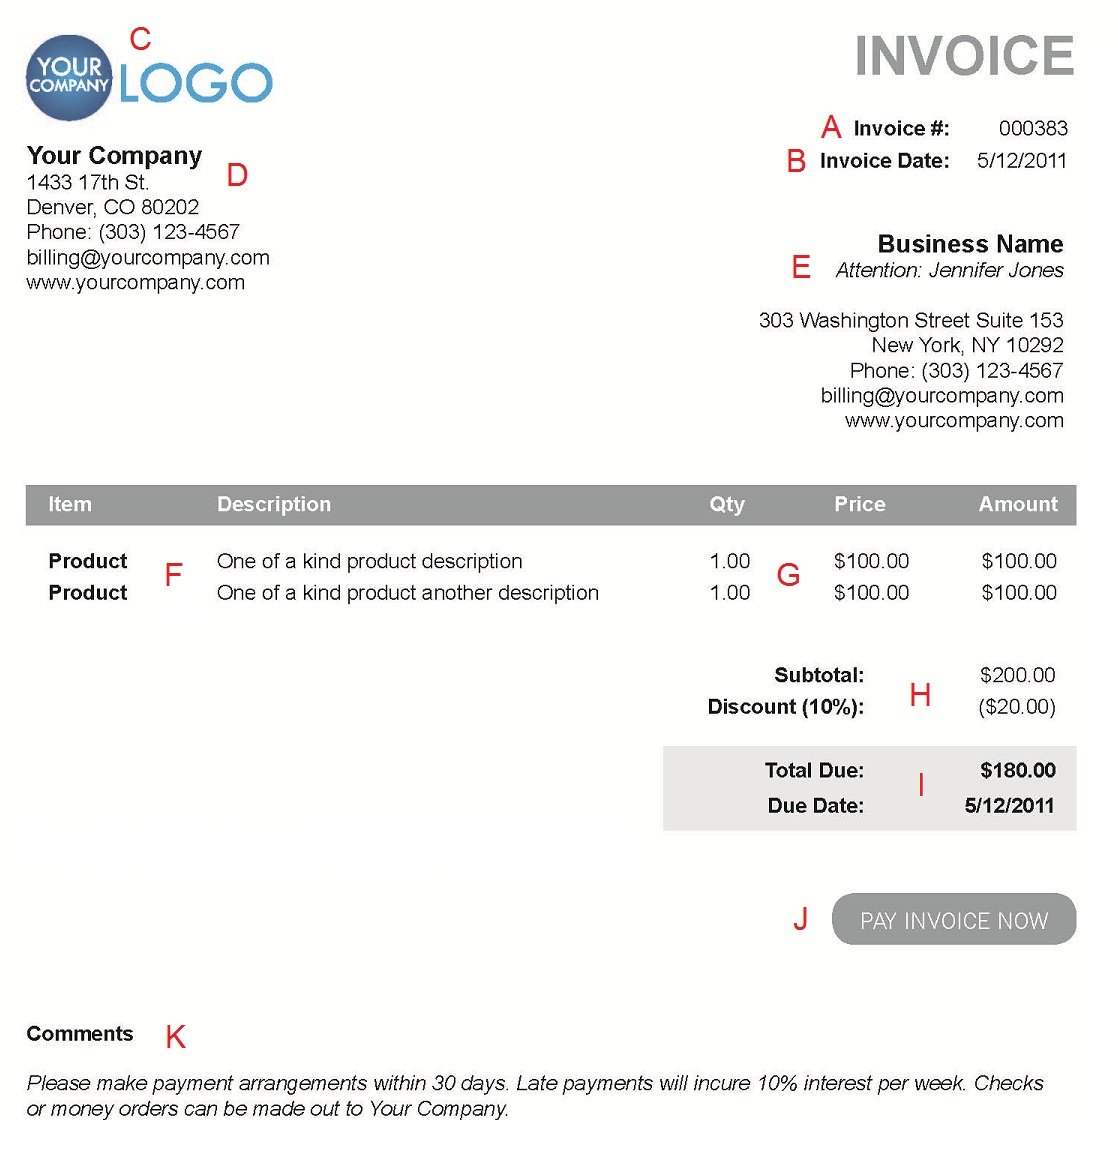 Coolmathgamesus  Marvelous The  Different Sections Of An Electronic Payment Invoice With Glamorous A  With Breathtaking Sample Invoice Document Also Difference Between Factoring And Invoice Discounting In Addition Magento Pdf Invoice And Invoice Method As Well As Performance Invoice Sample Additionally Invoice Software In Excel From Paysimplecom With Coolmathgamesus  Glamorous The  Different Sections Of An Electronic Payment Invoice With Breathtaking A  And Marvelous Sample Invoice Document Also Difference Between Factoring And Invoice Discounting In Addition Magento Pdf Invoice From Paysimplecom